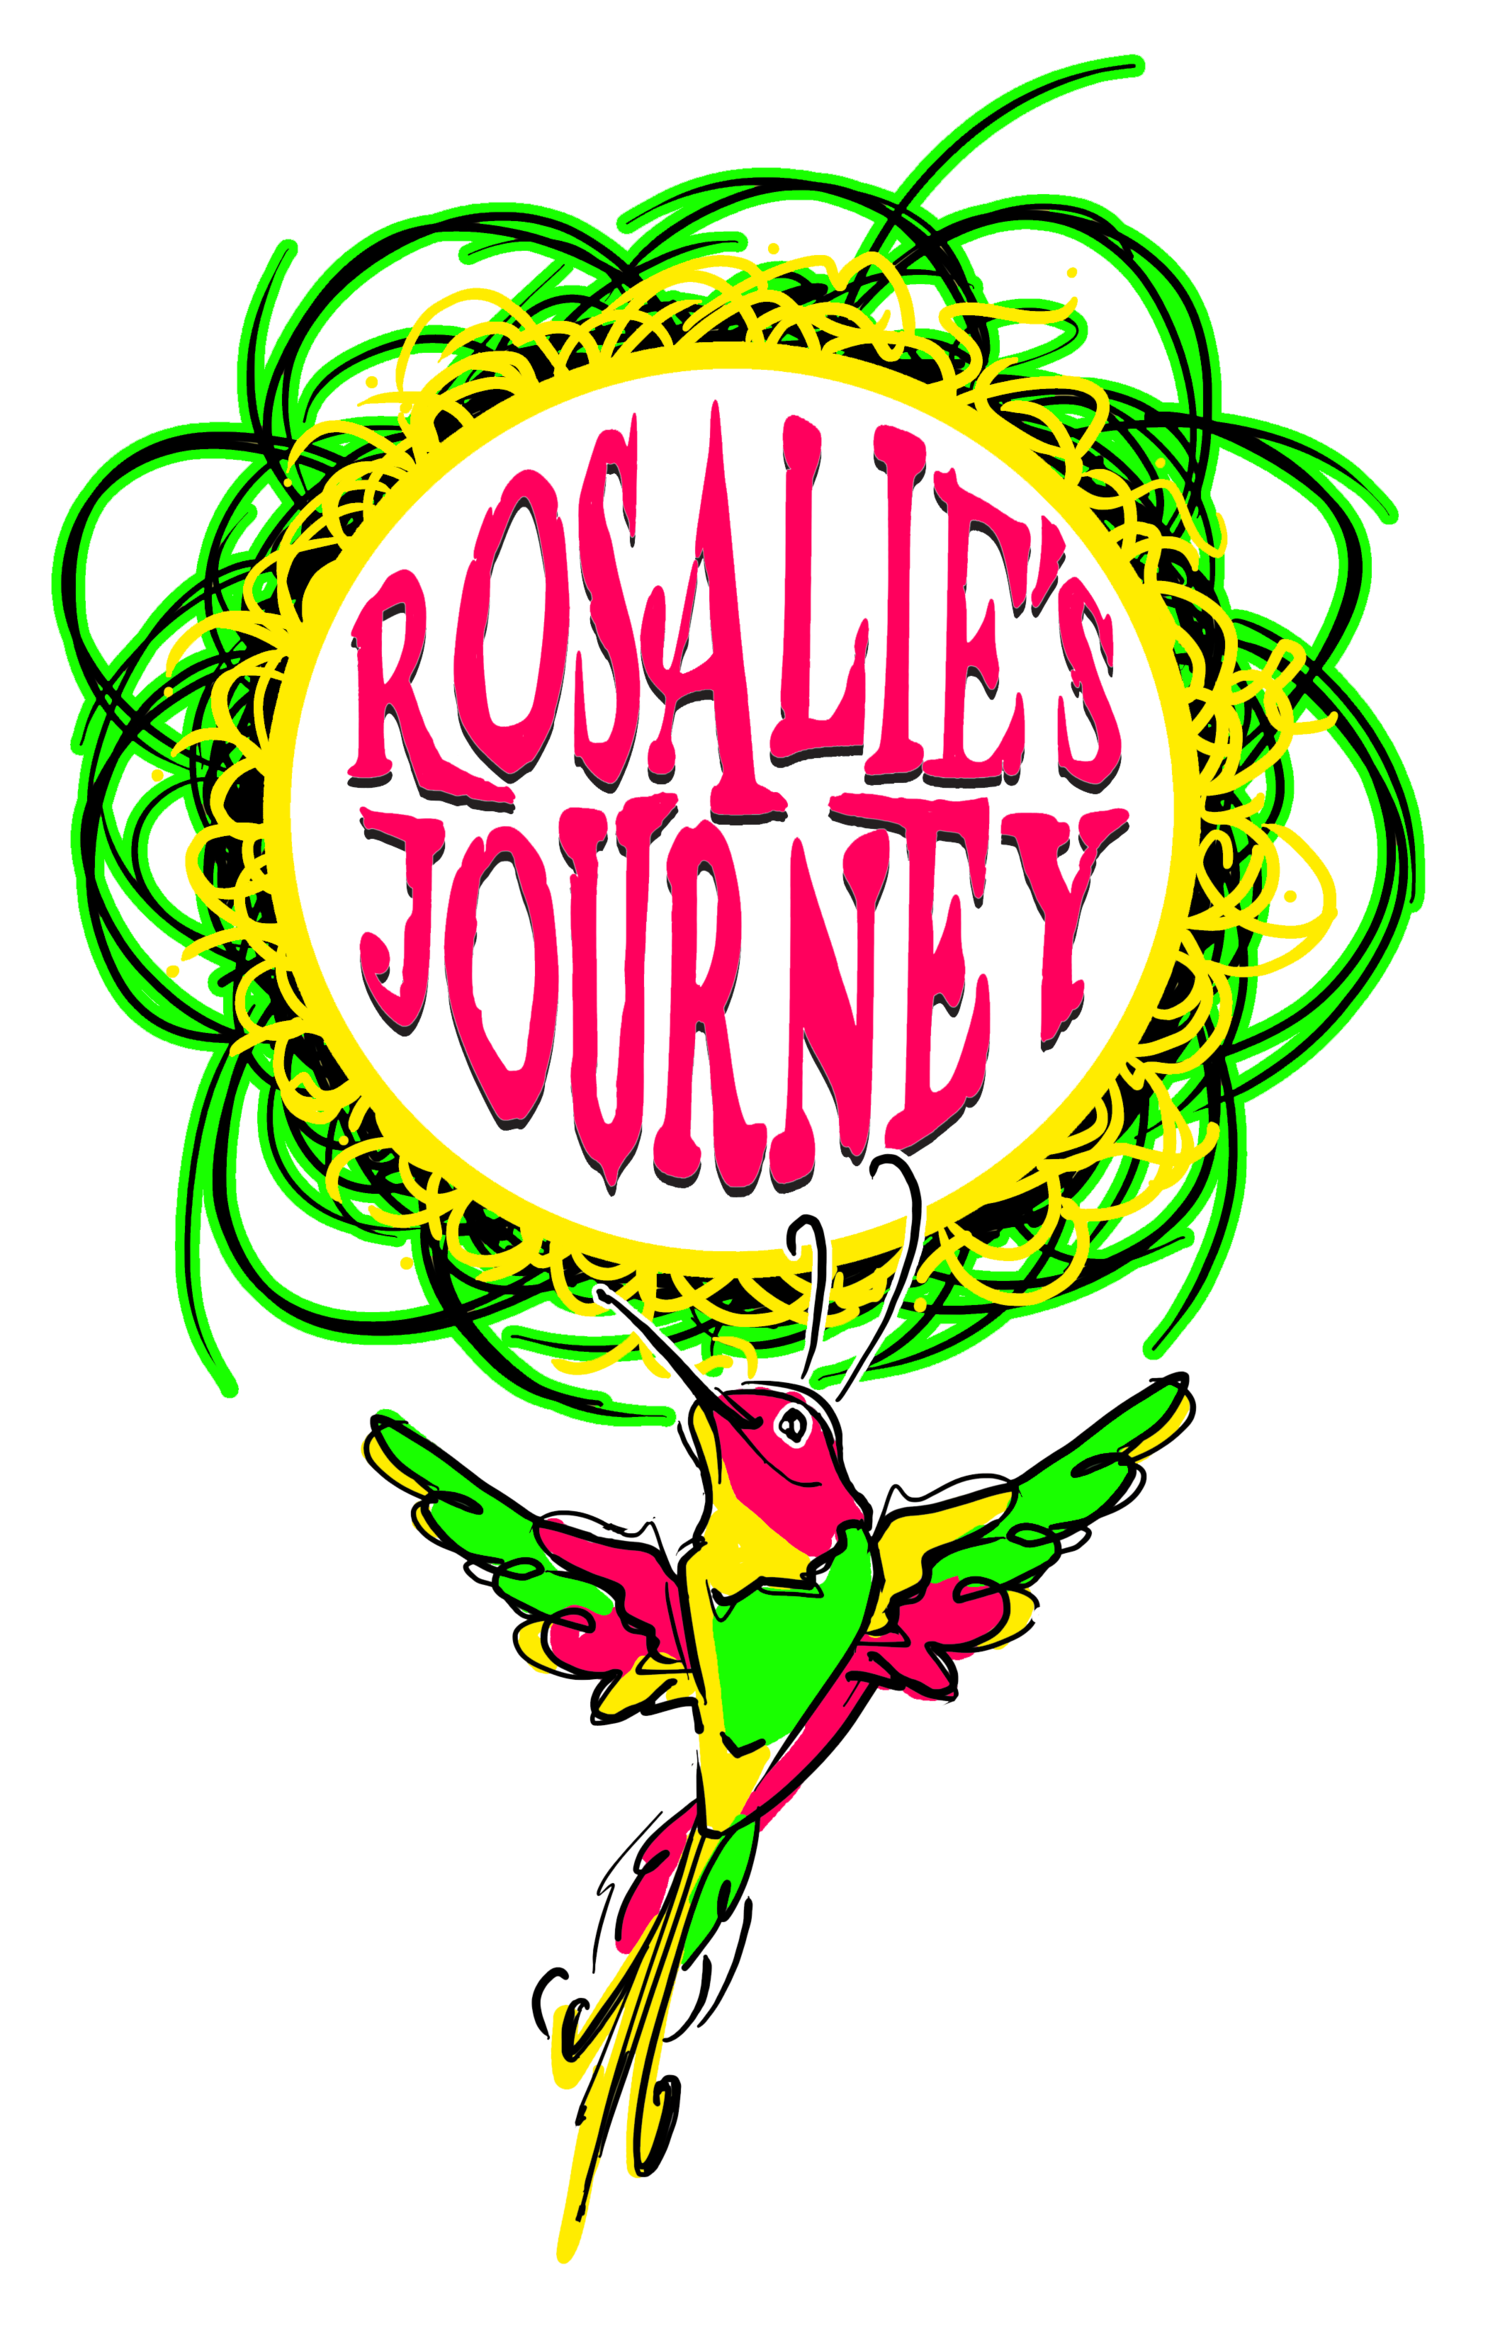 Rosalie's Journey